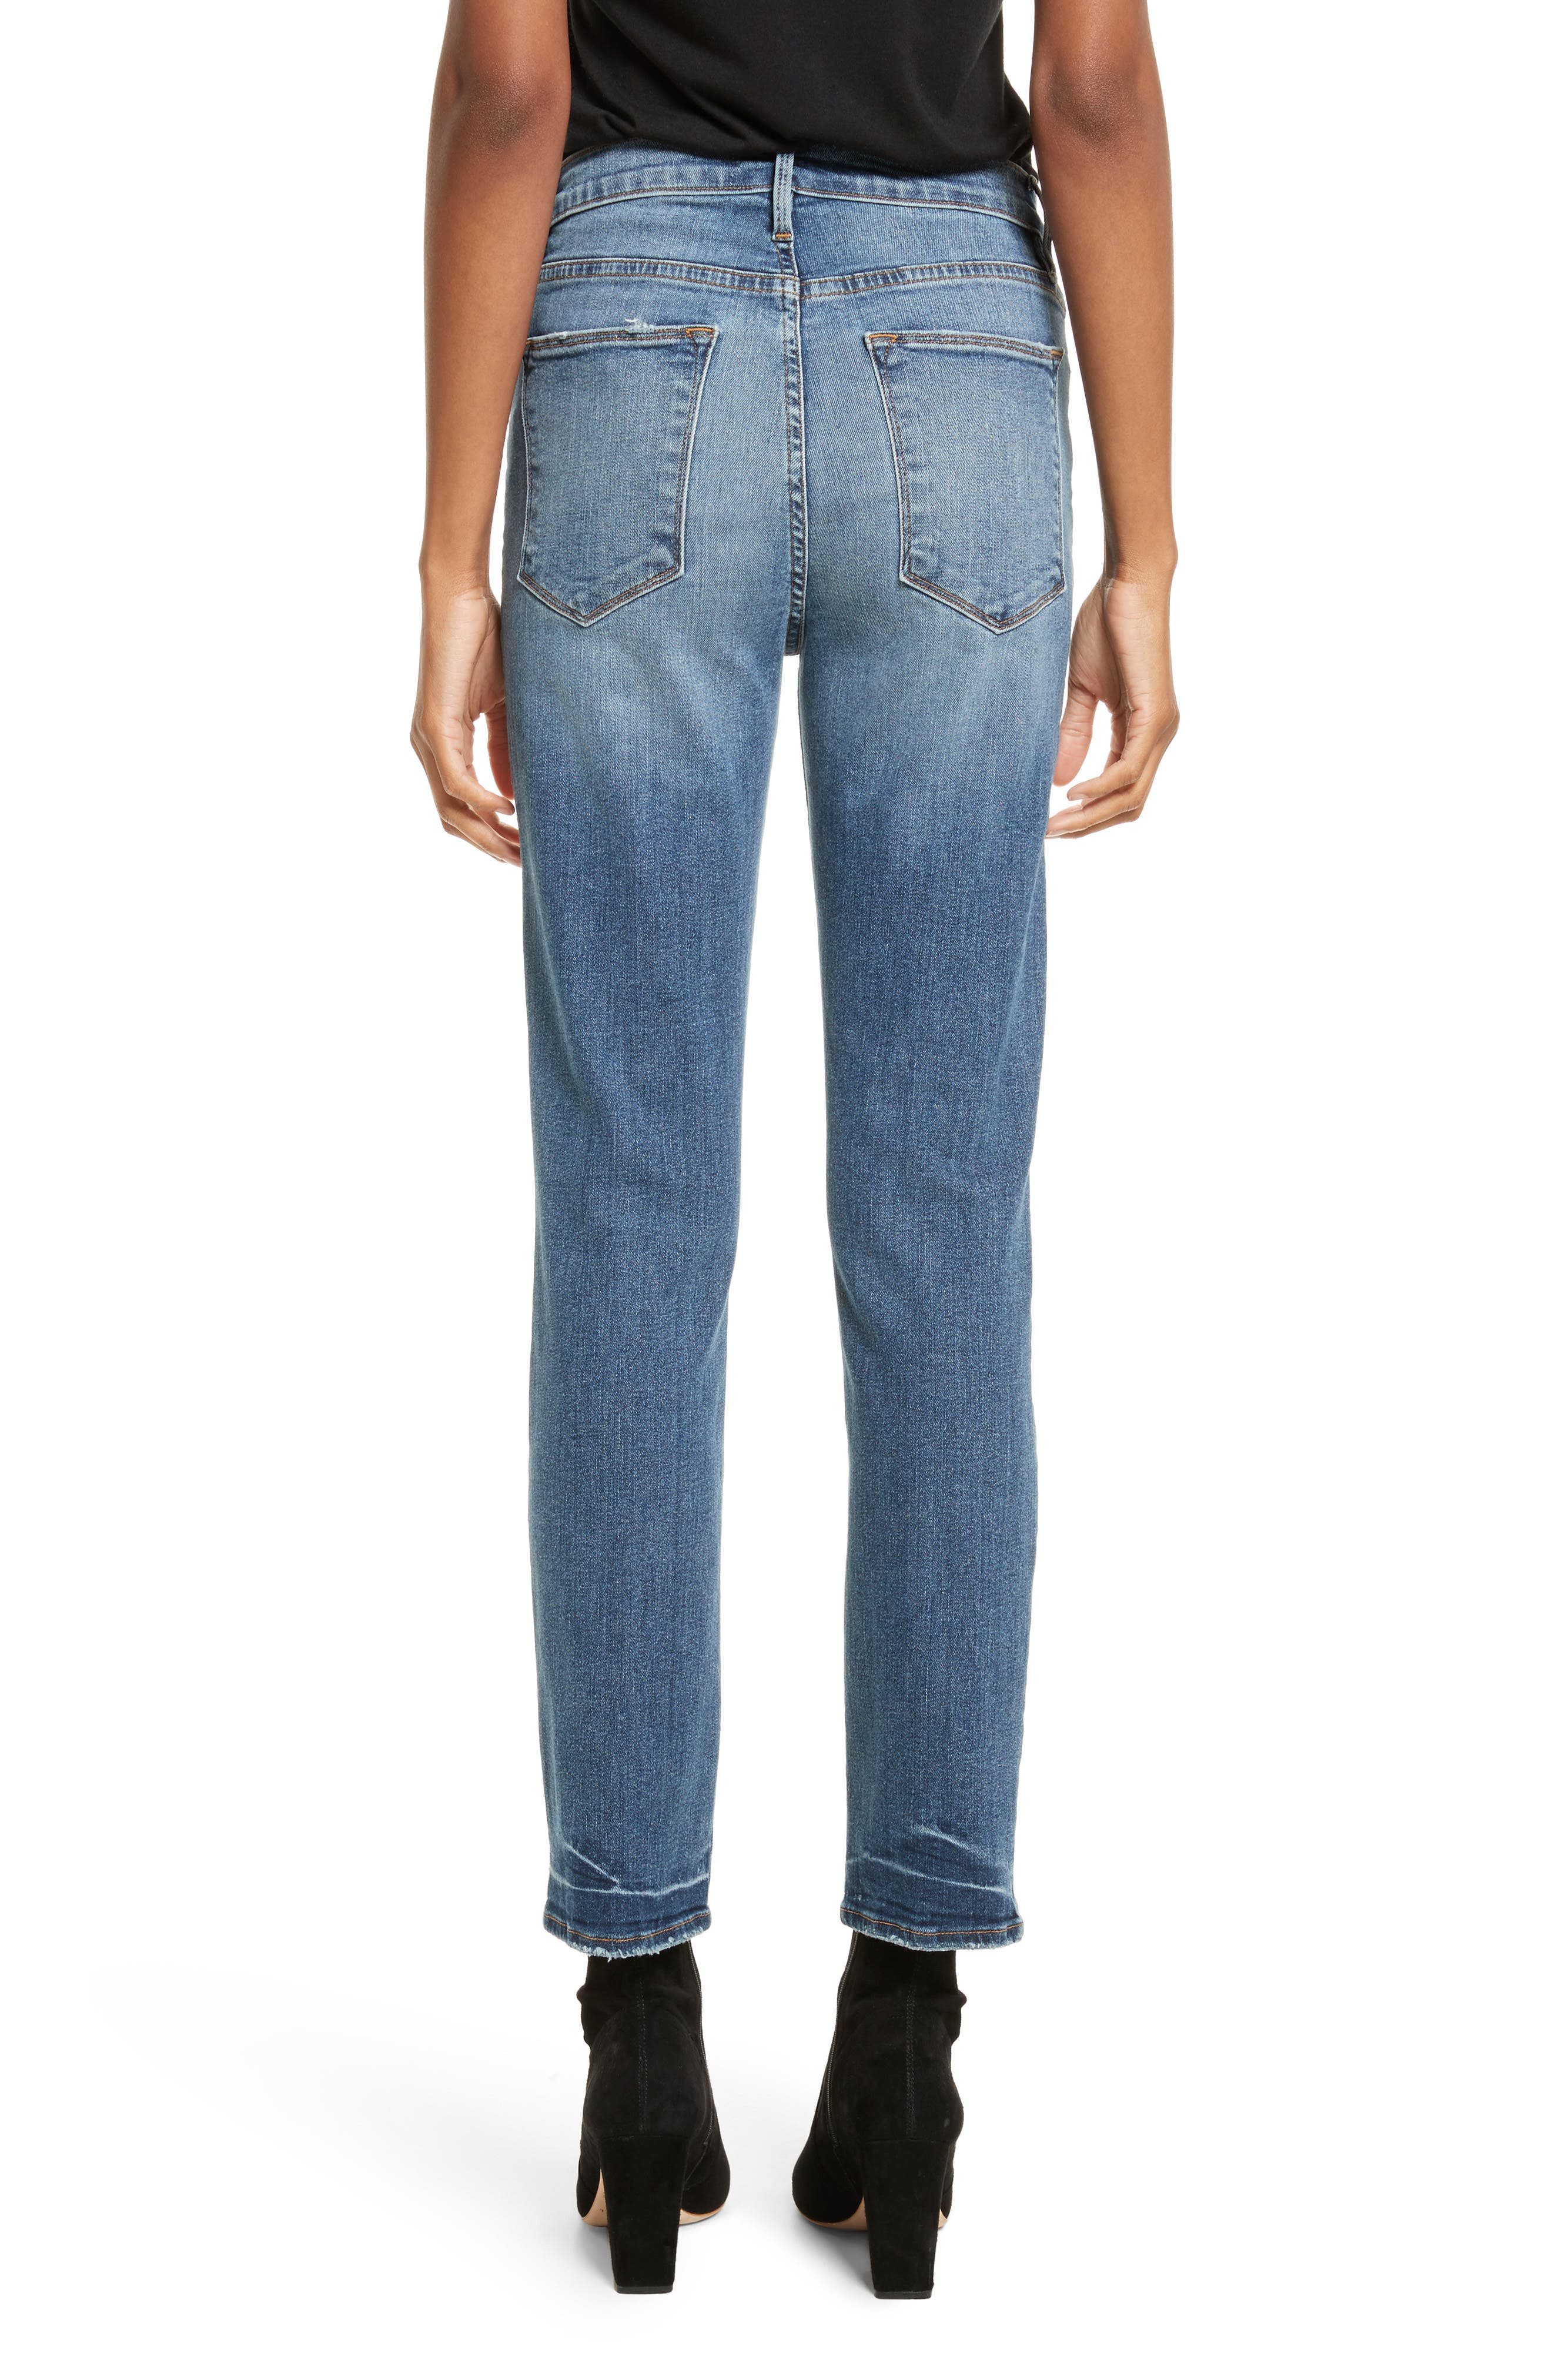 Le High Straight High Waist Crop Jeans,                             Alternate thumbnail 3, color,                             Whitwell